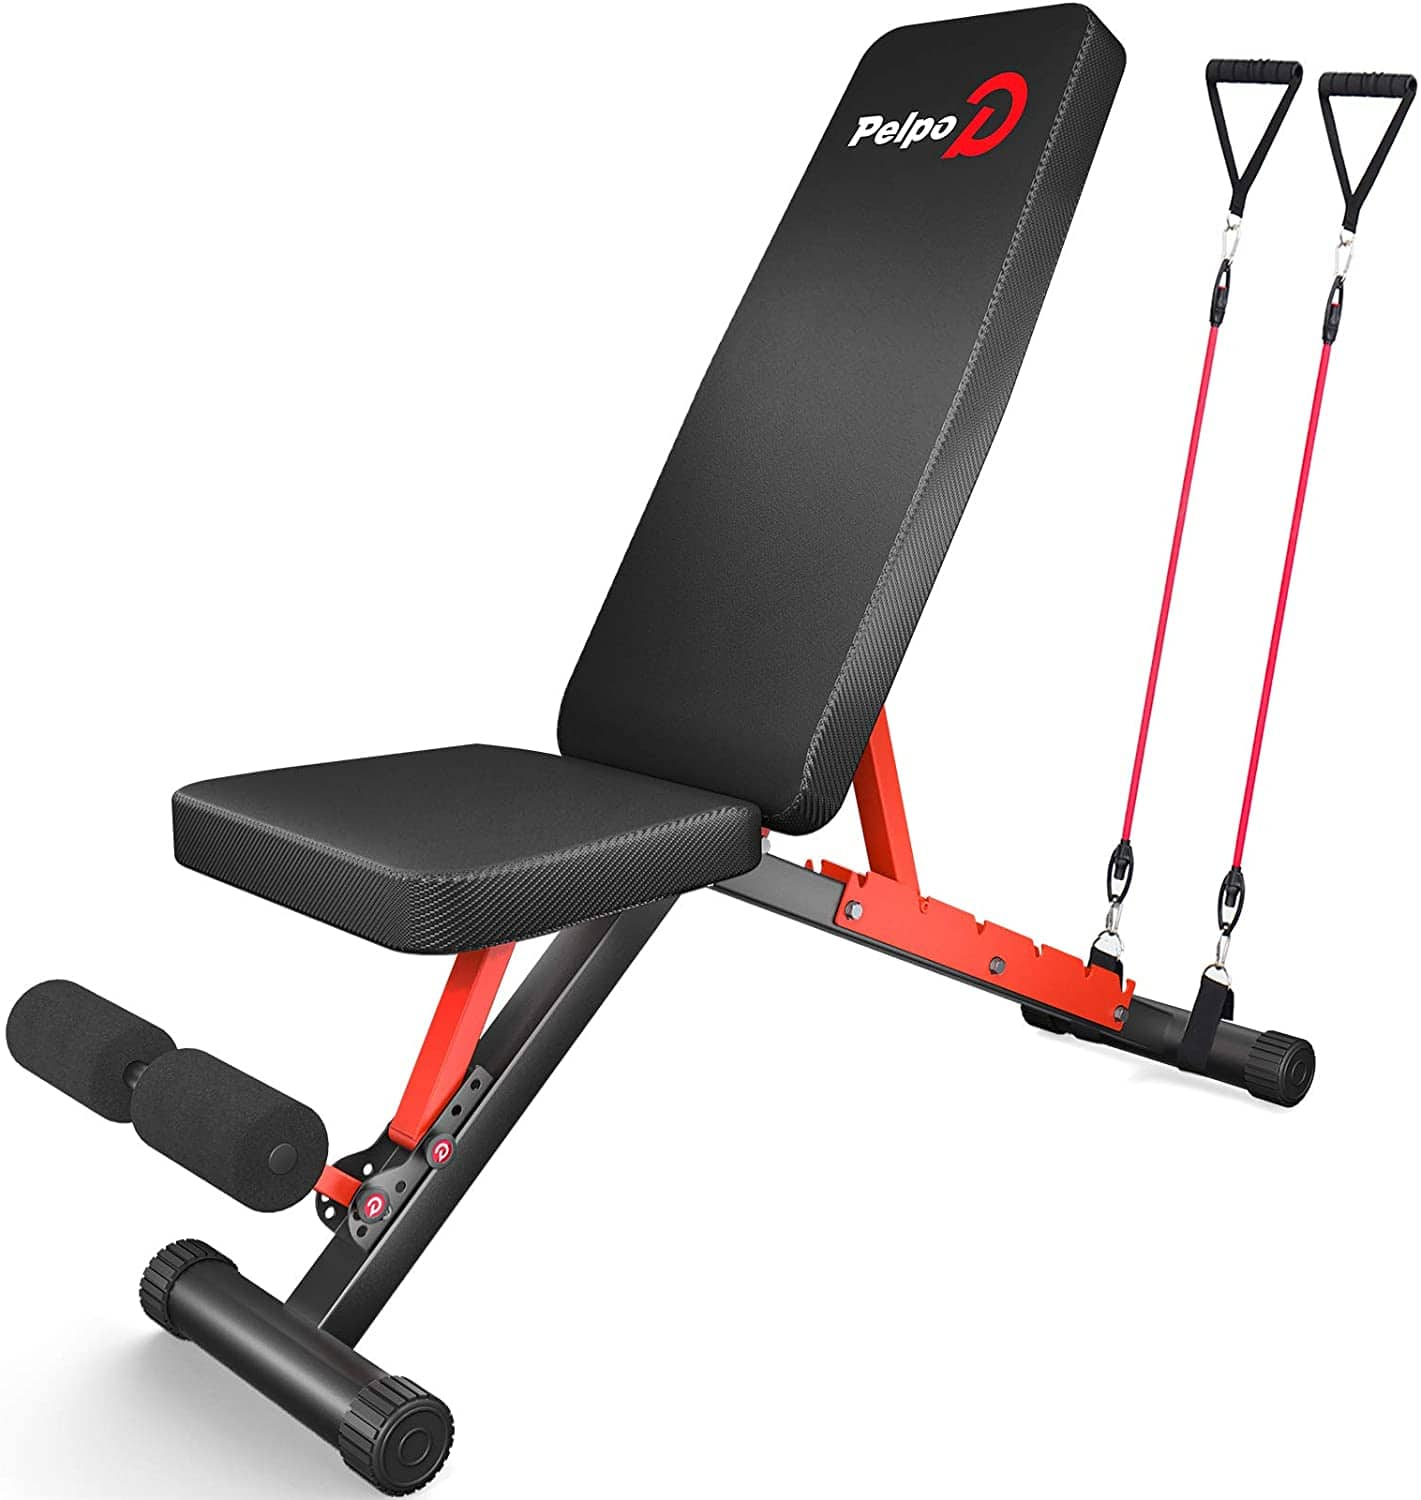 Foldable workout bench 660lbs capacity w/resistance bands $93.49